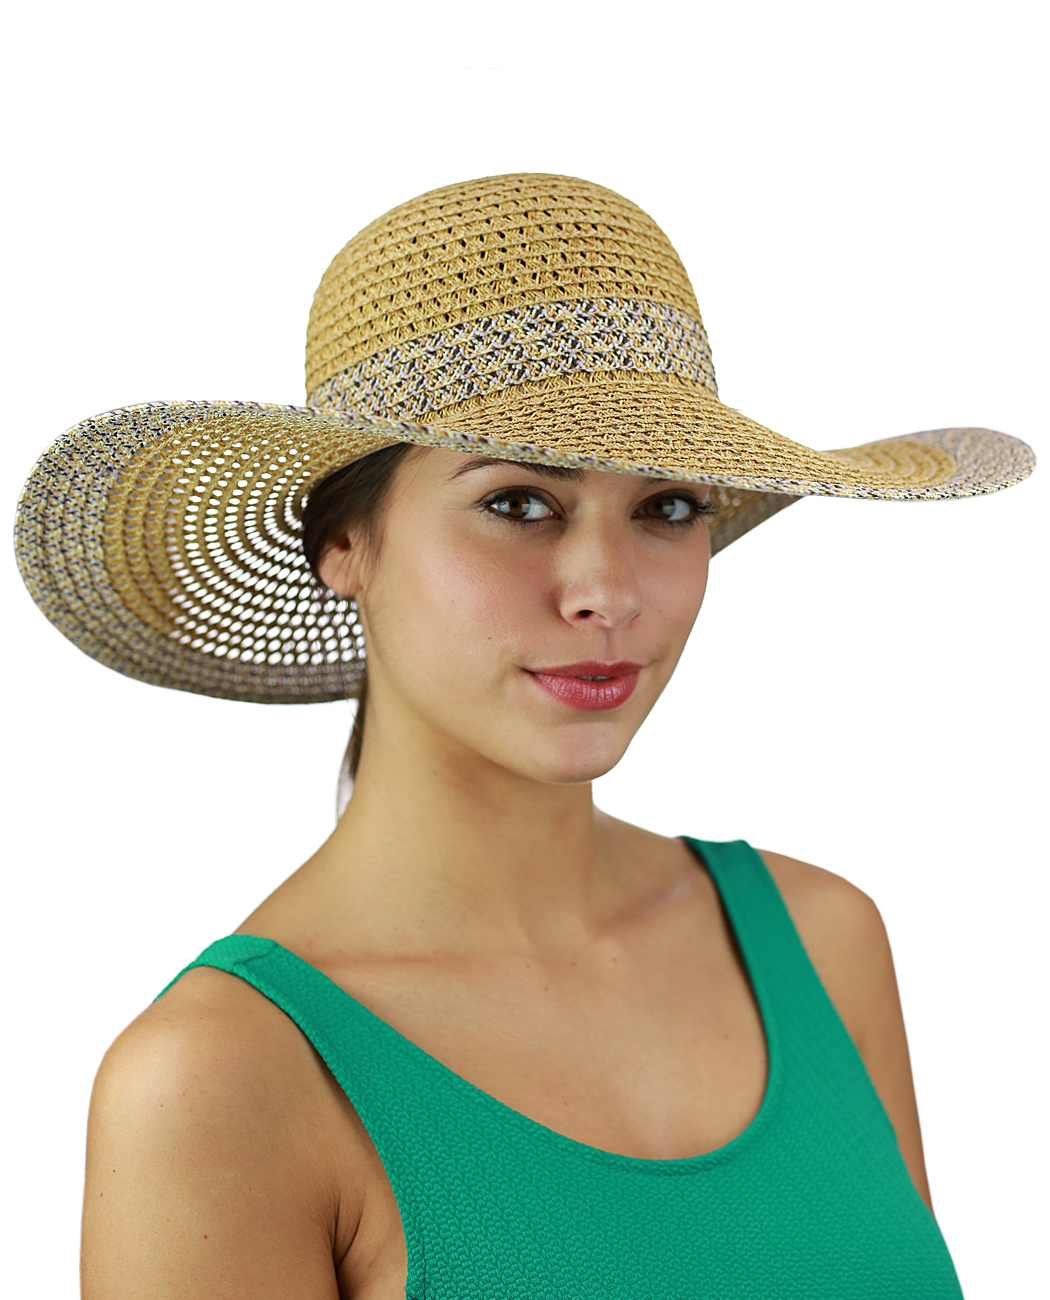 C.C Women's Open Weaved Multicolored Band and Wide Brim Floppy Summer Sun Hat, Lilac